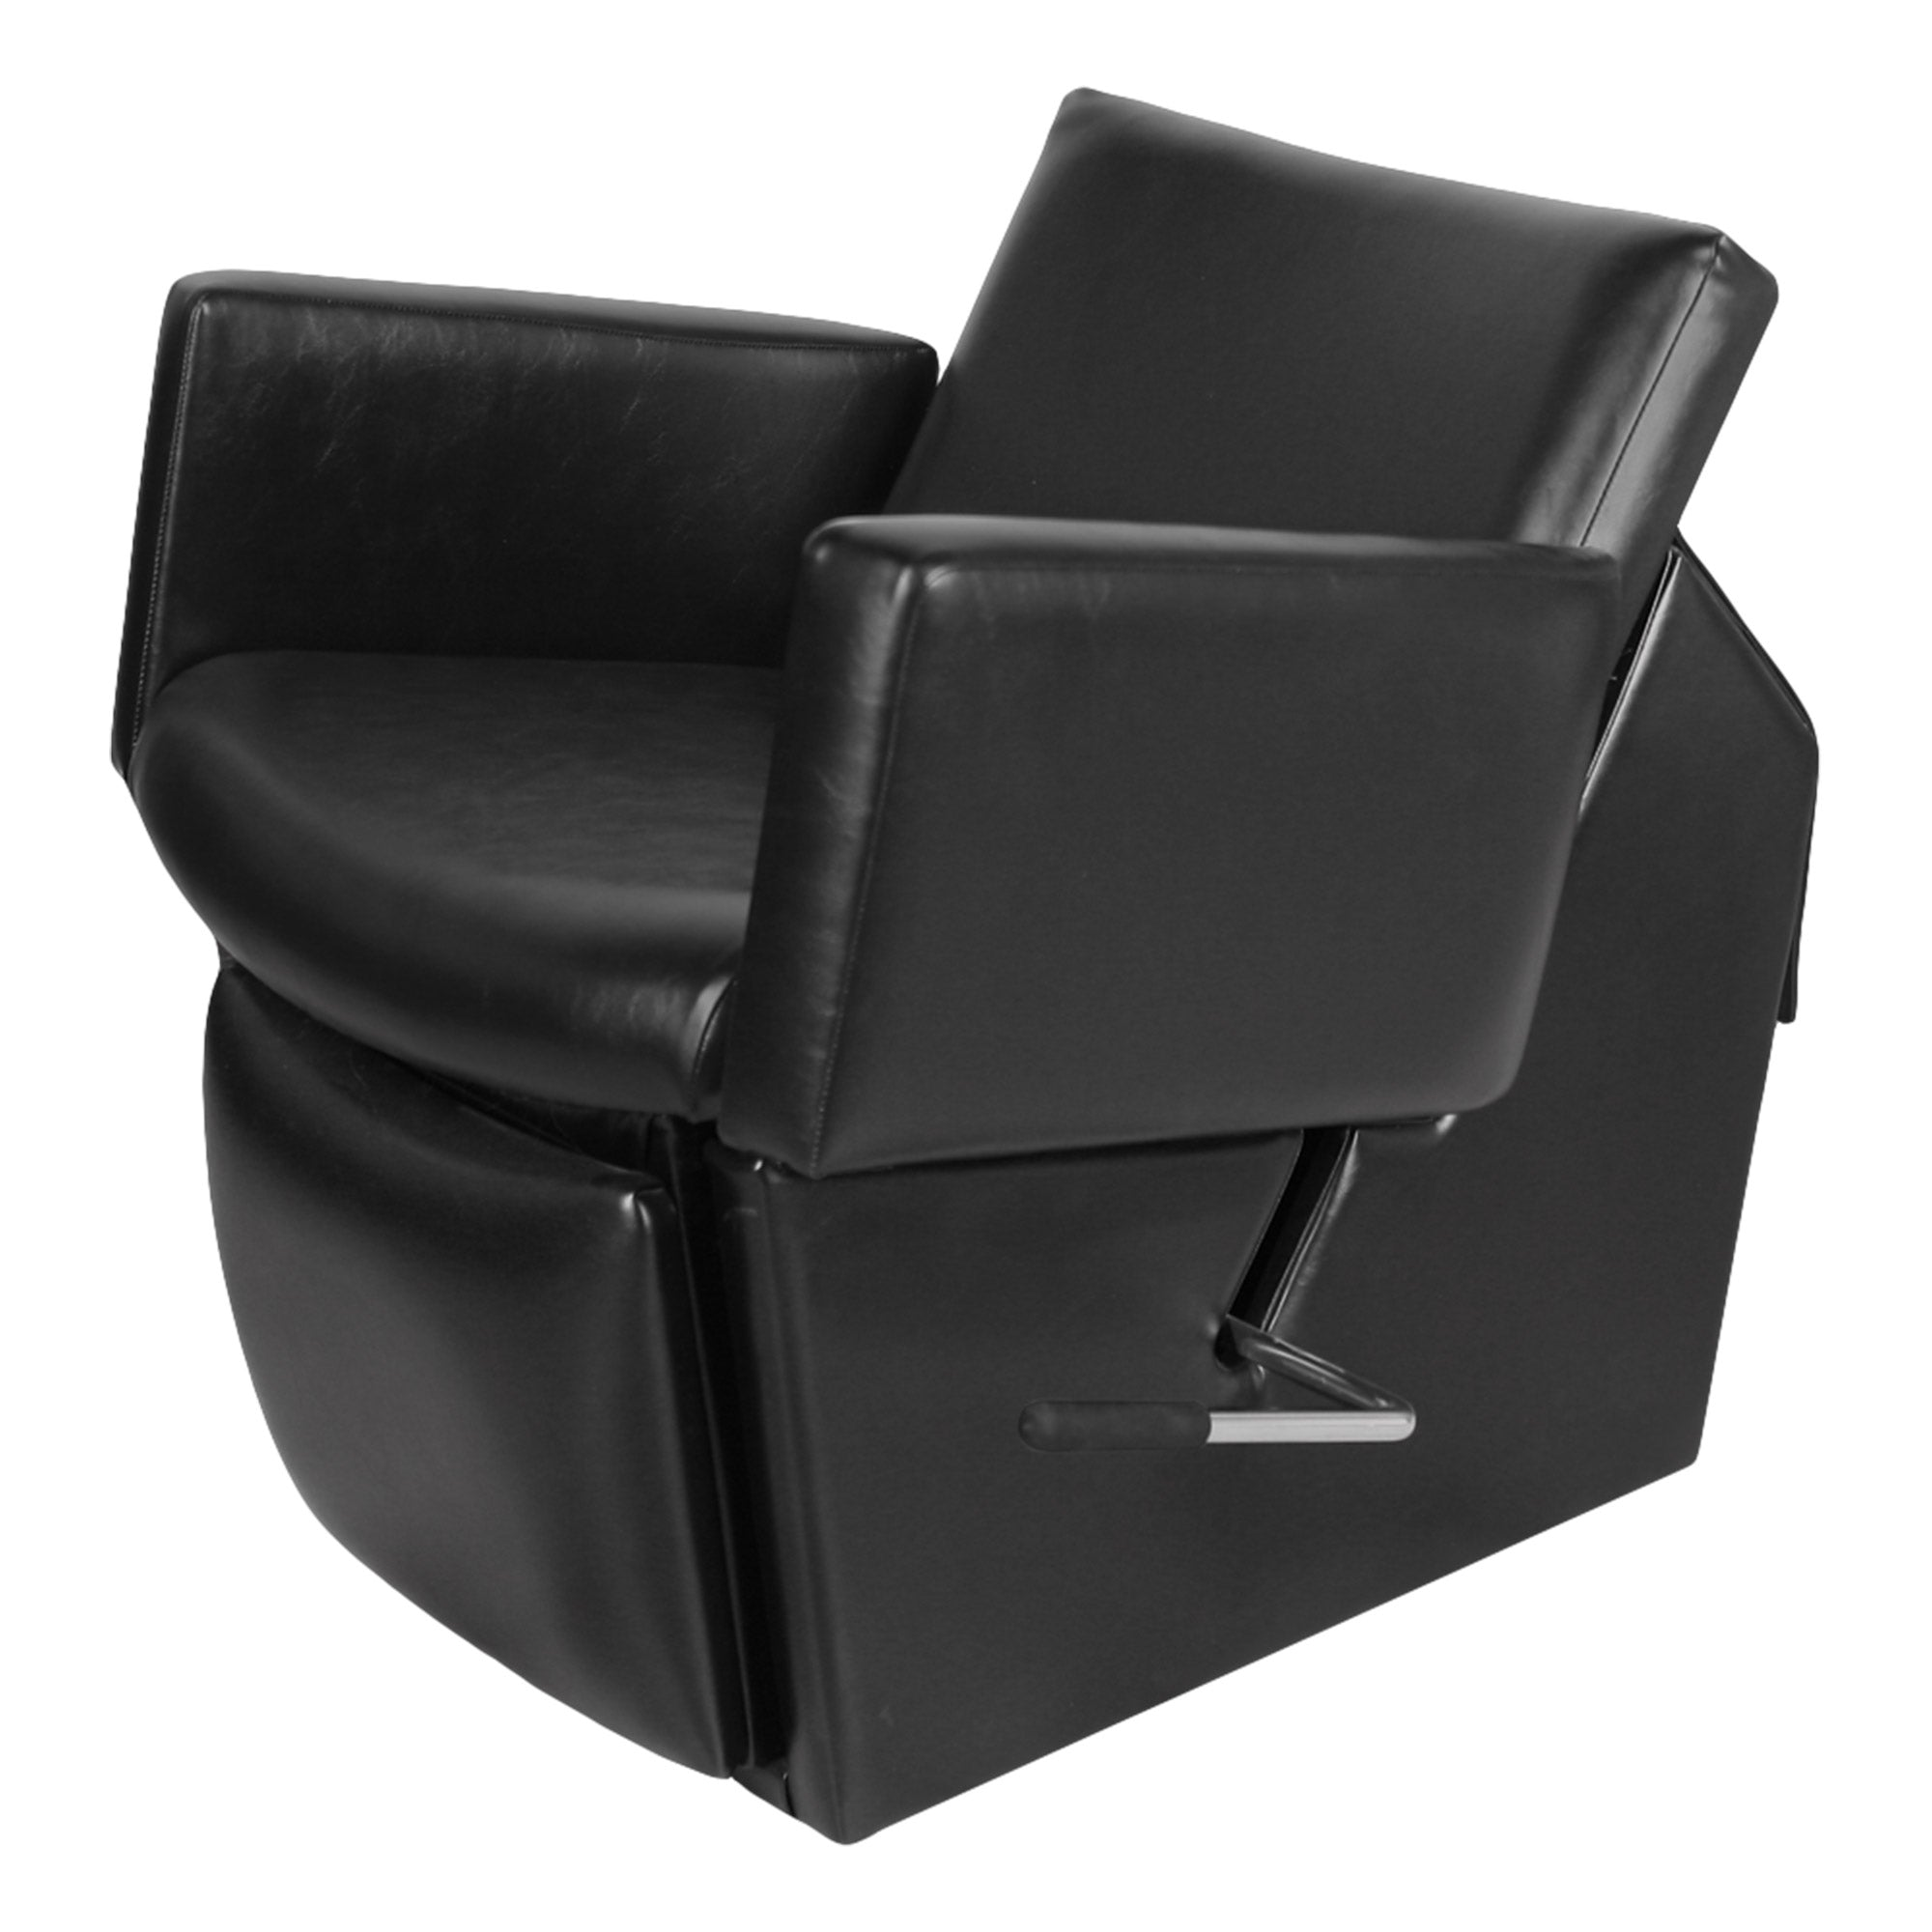 Cigno 59 Electric Shampoo Chair - Collins